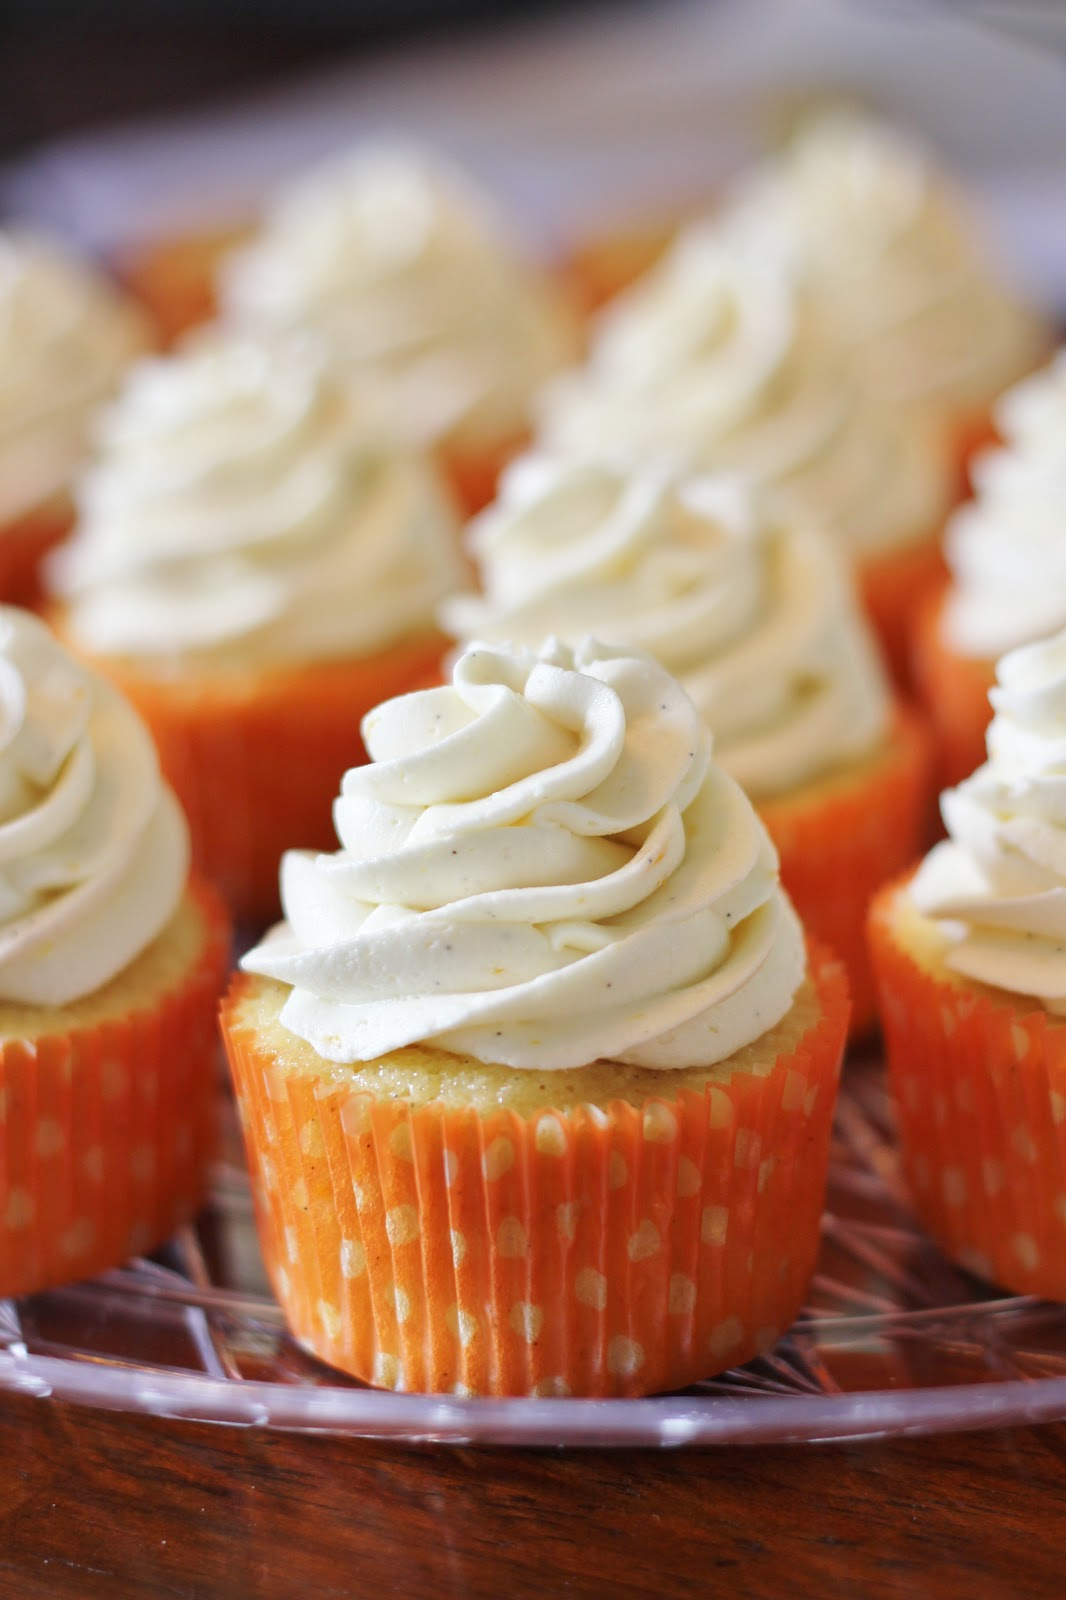 wrestled a cupcake once: Orange Creamsicle Cupcakes